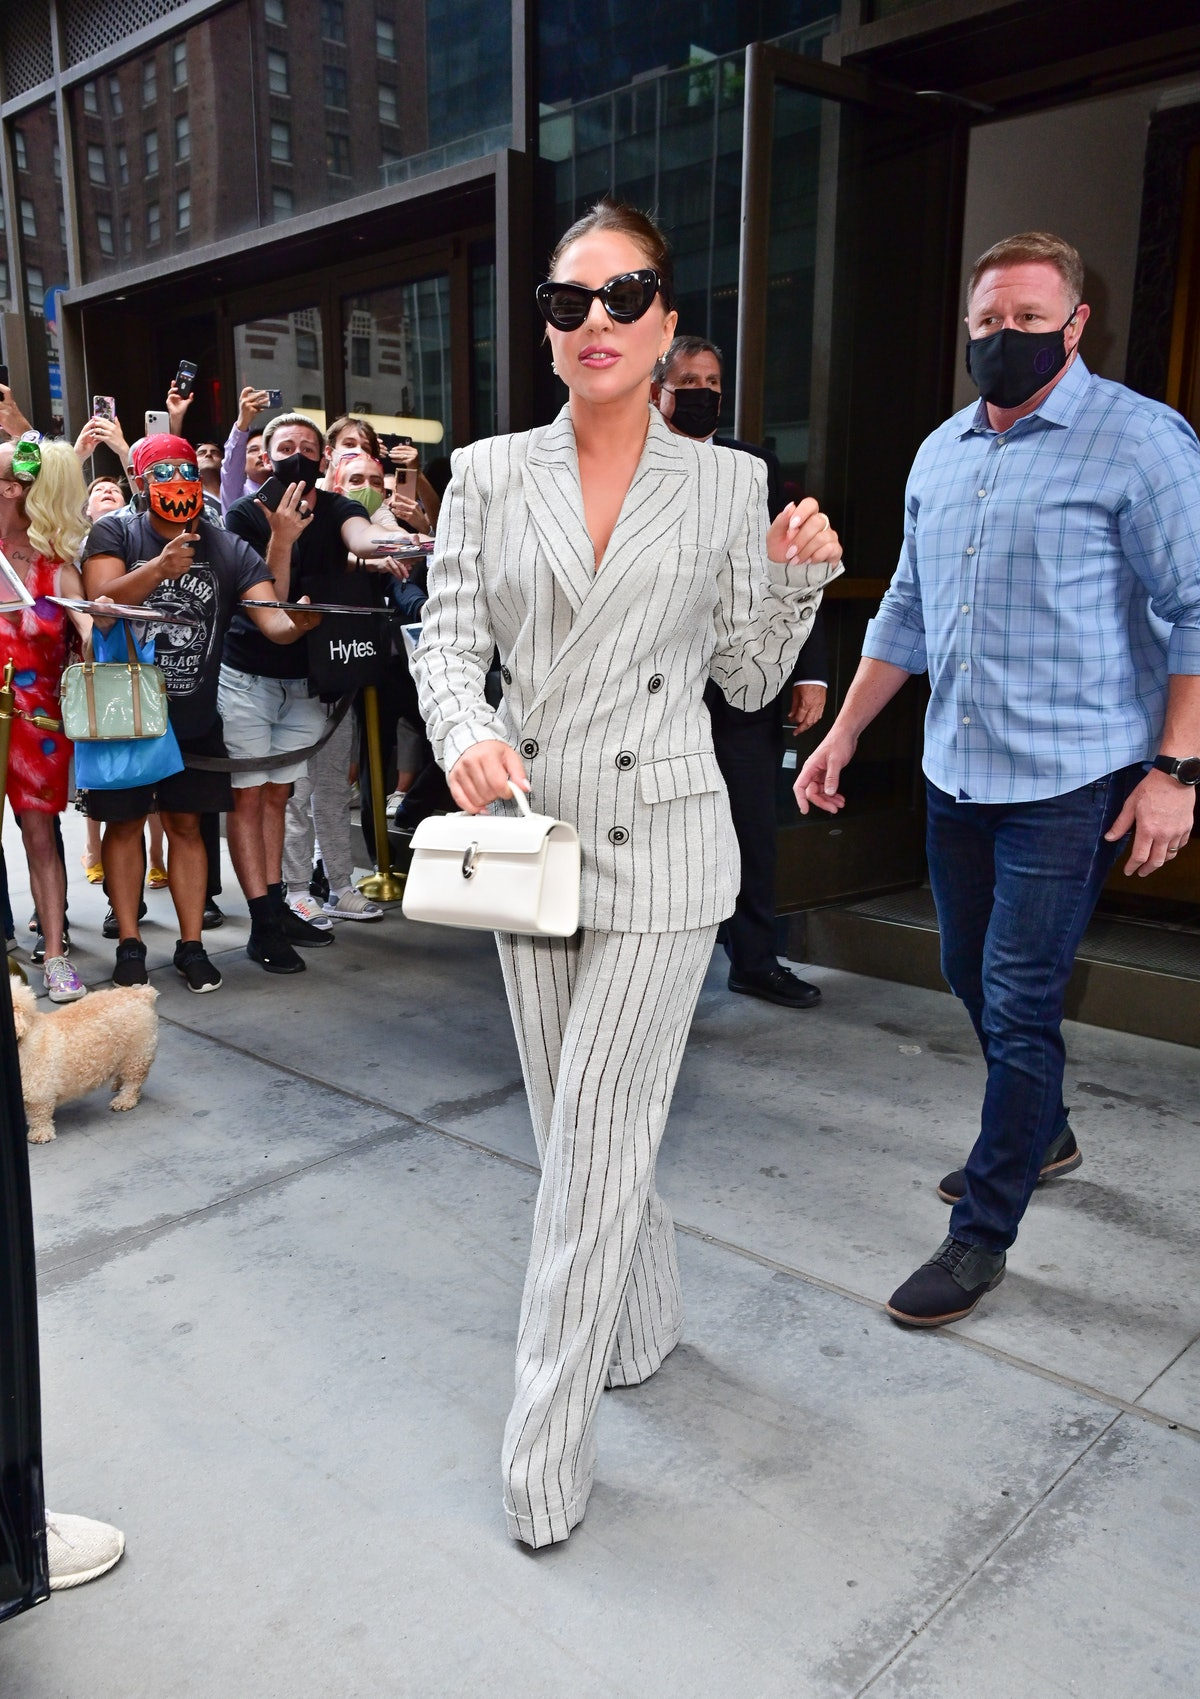 NEW YORK, NEW YORK - AUGUST 02: Lady Gaga seen on the streets of Manhattan on August 02, 2021 in New...